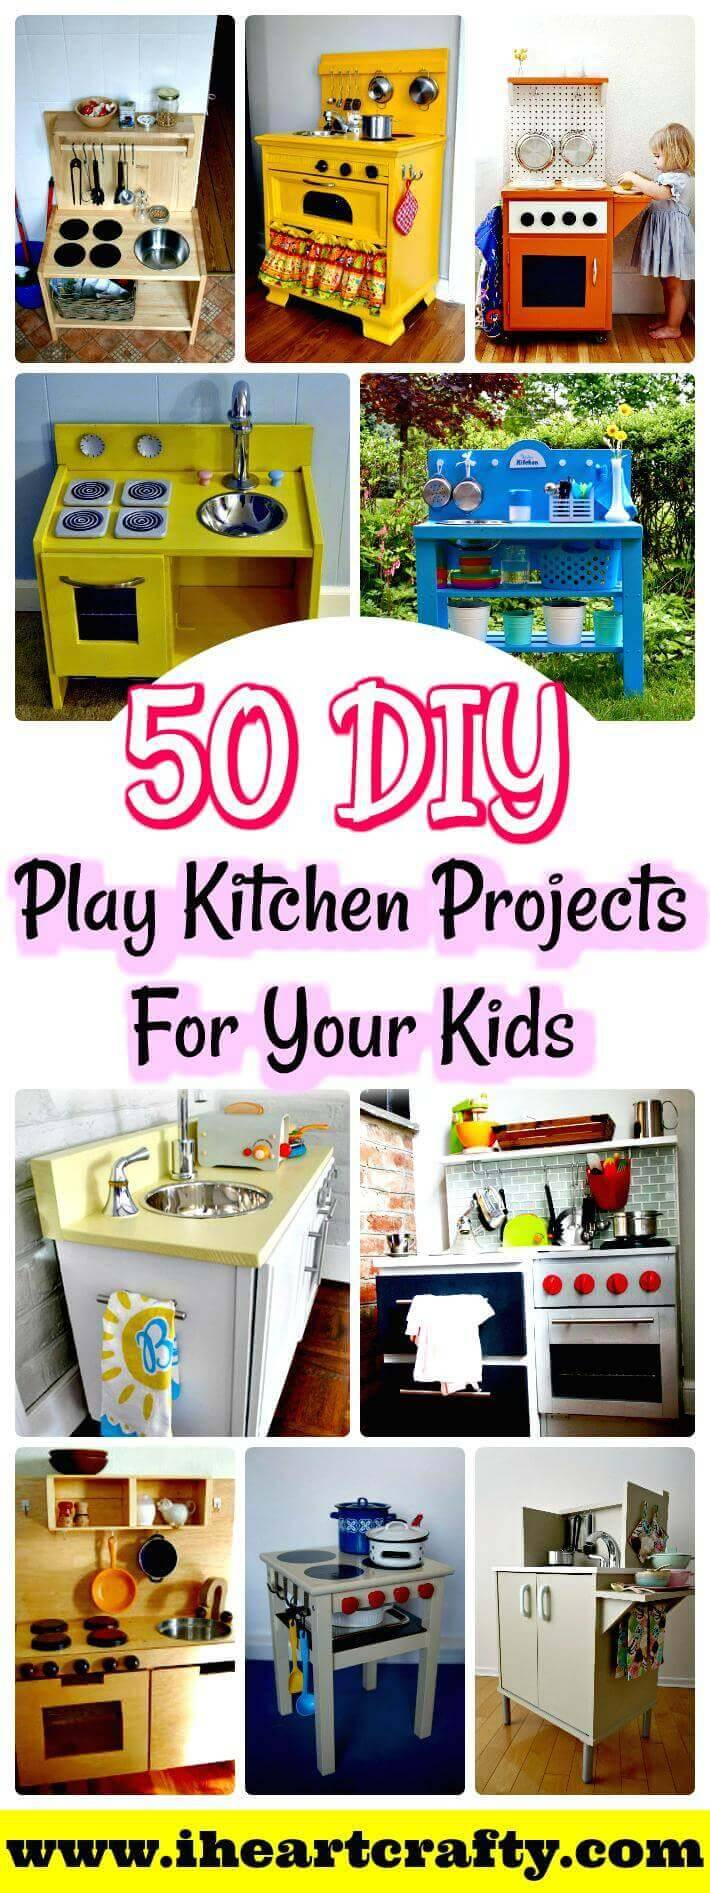 DIY Play Kitchen Projects